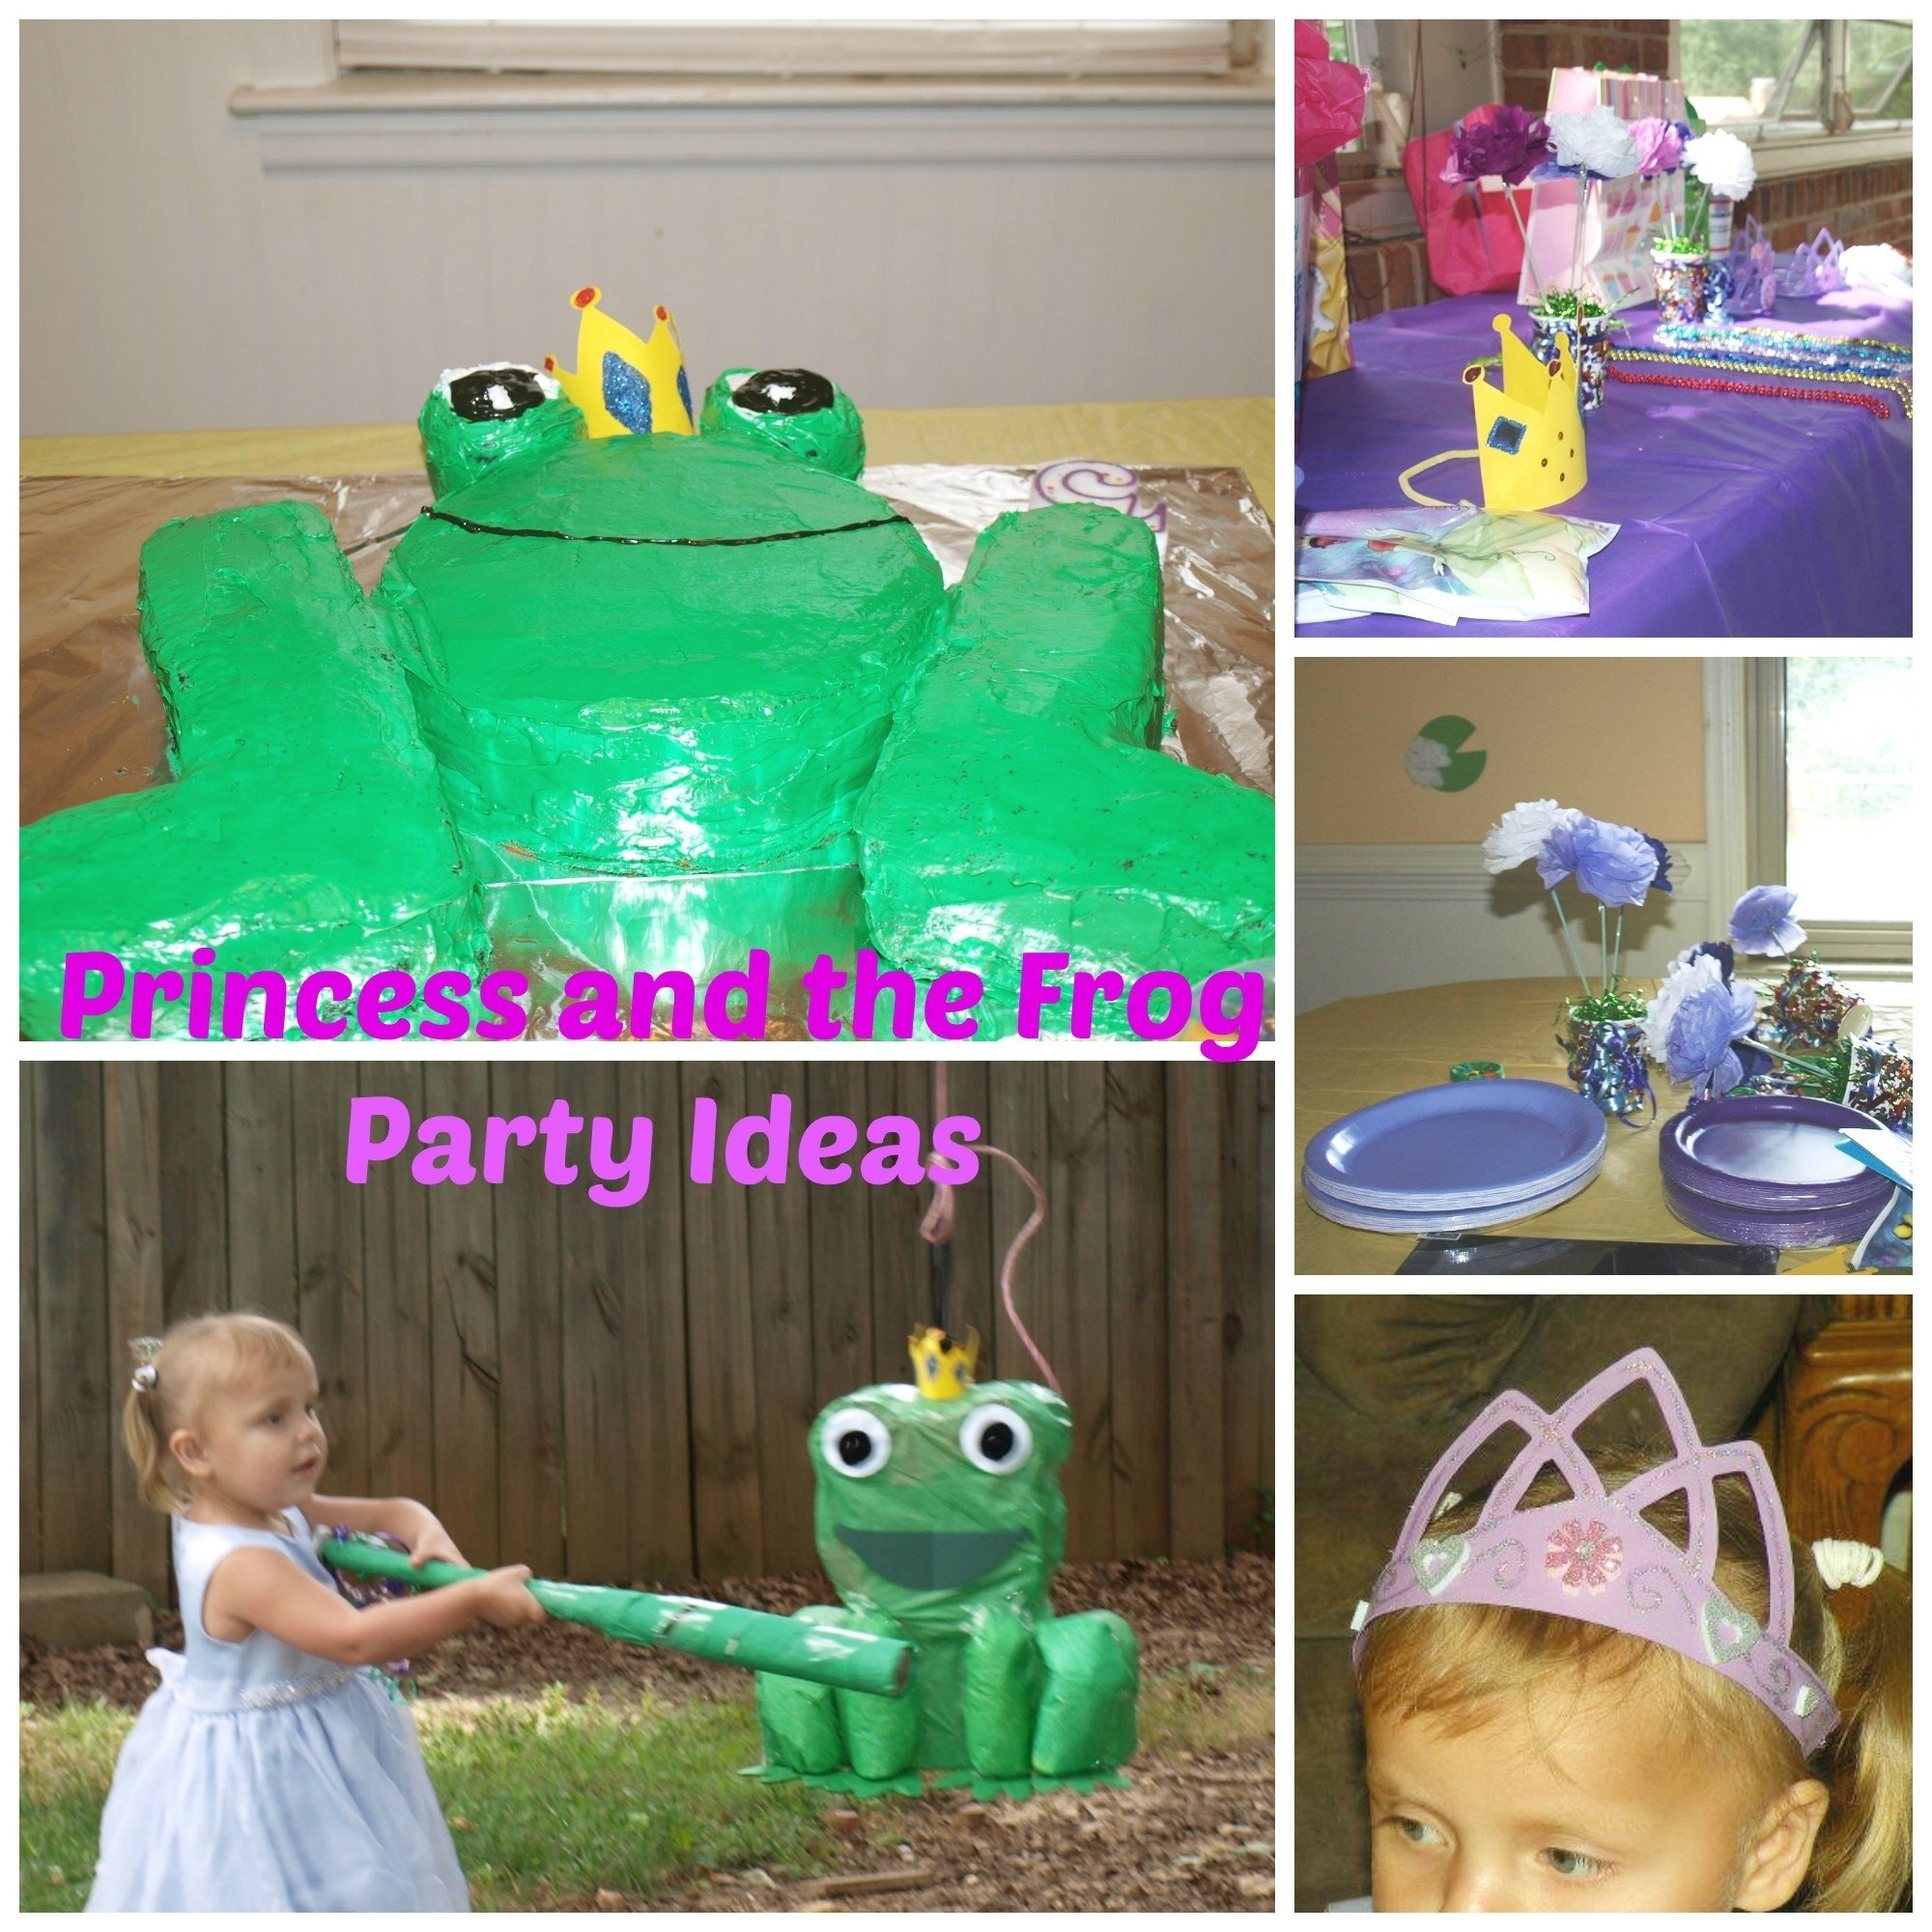 10 Lovable Princess And The Frog Birthday Ideas princess and the frog birthday ideas rebecca autry creations 2020